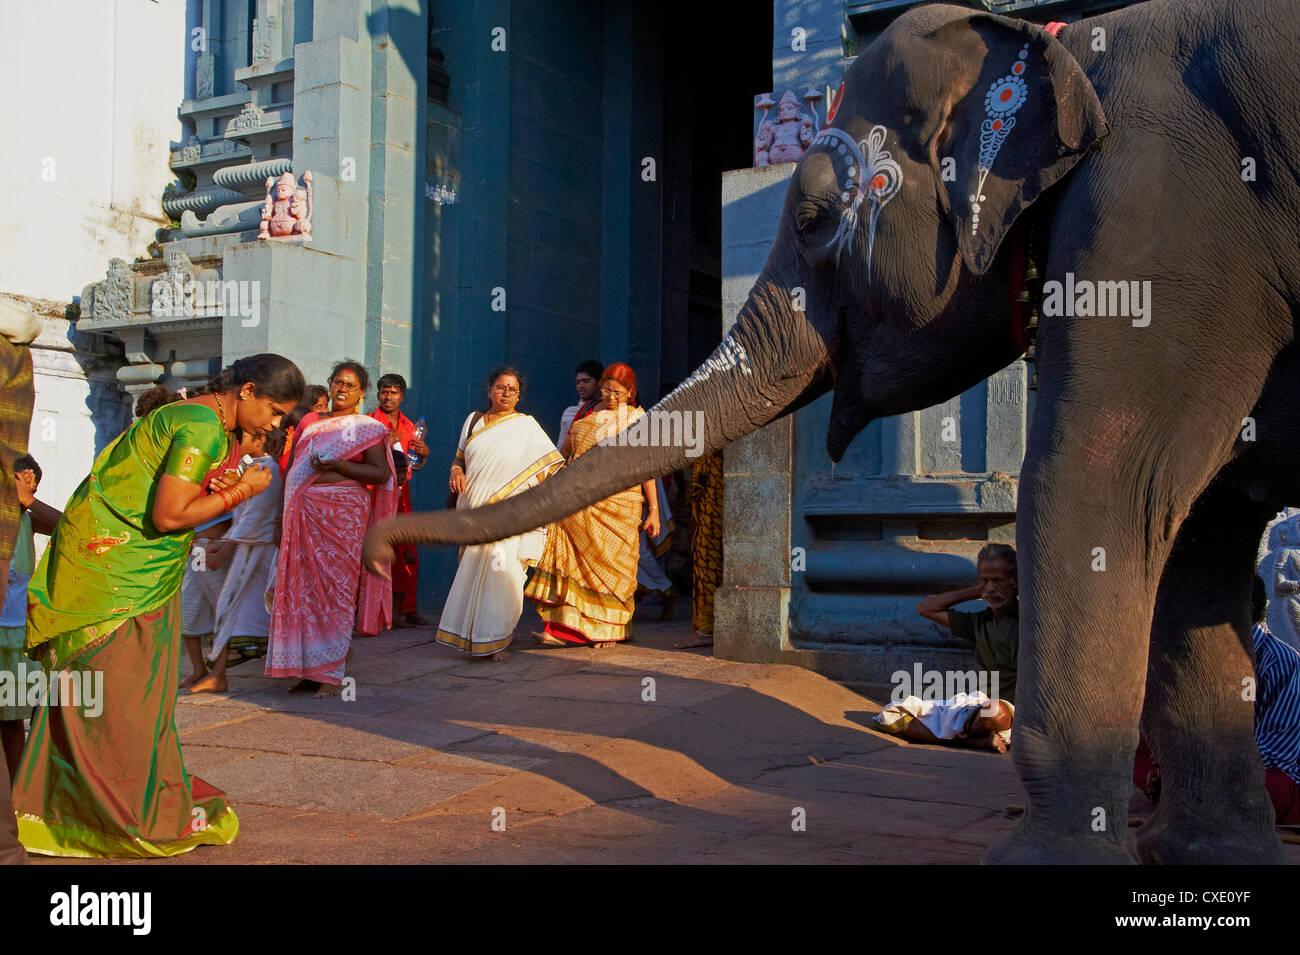 Bénédiction de l'éléphant, Kamakshi Amman, Kanchipuram, Tamil Nadu, Inde, Asie Photo Stock